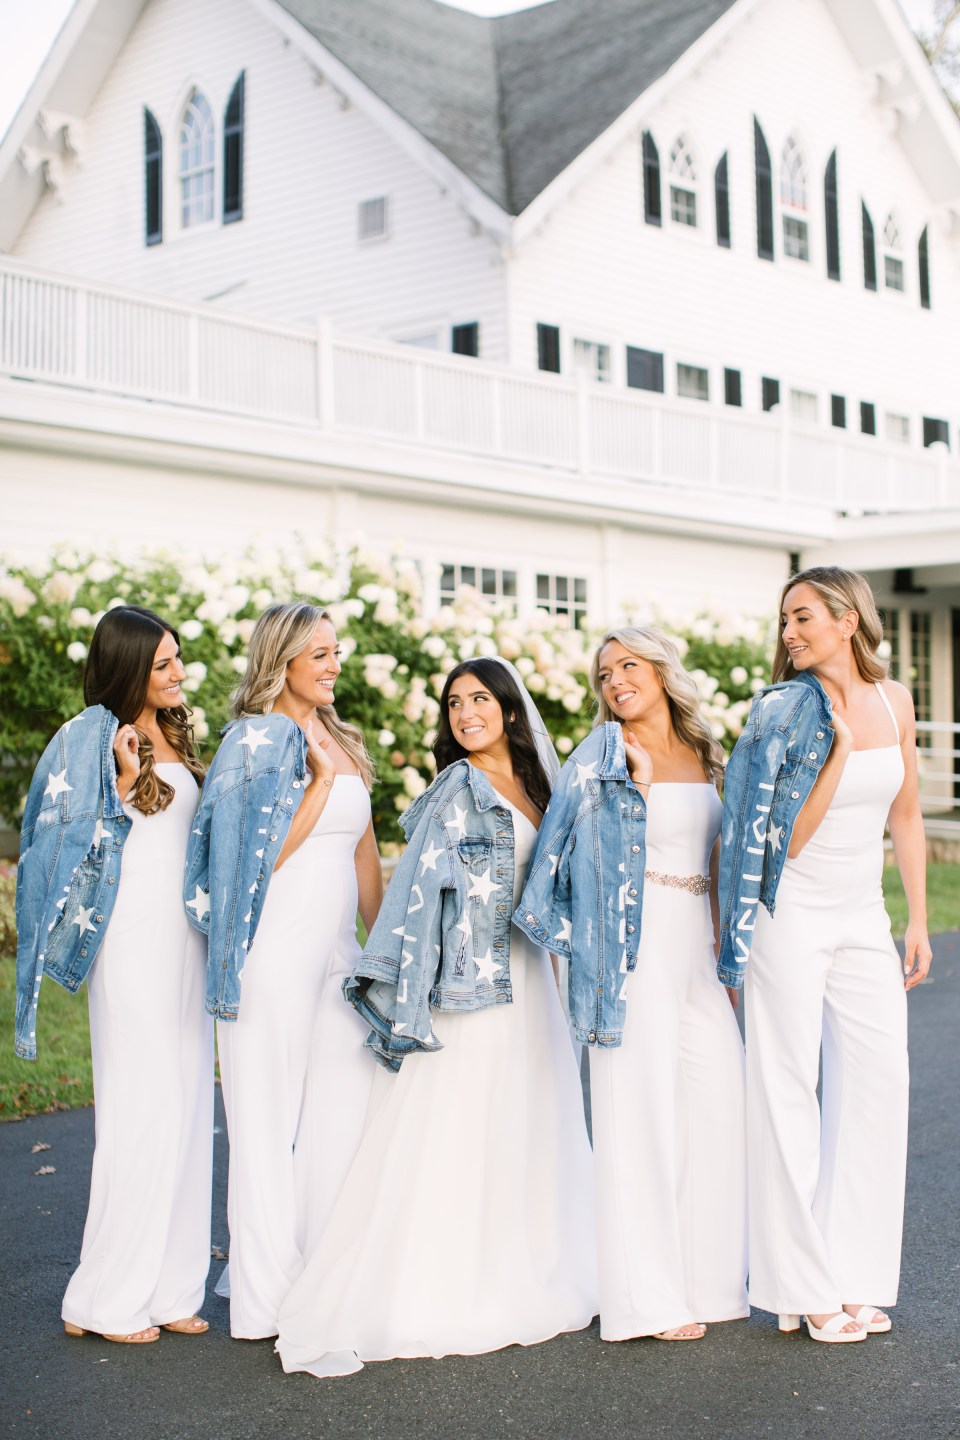 jean jackets for bridesmaids photographed by Ashley Mac Photographs